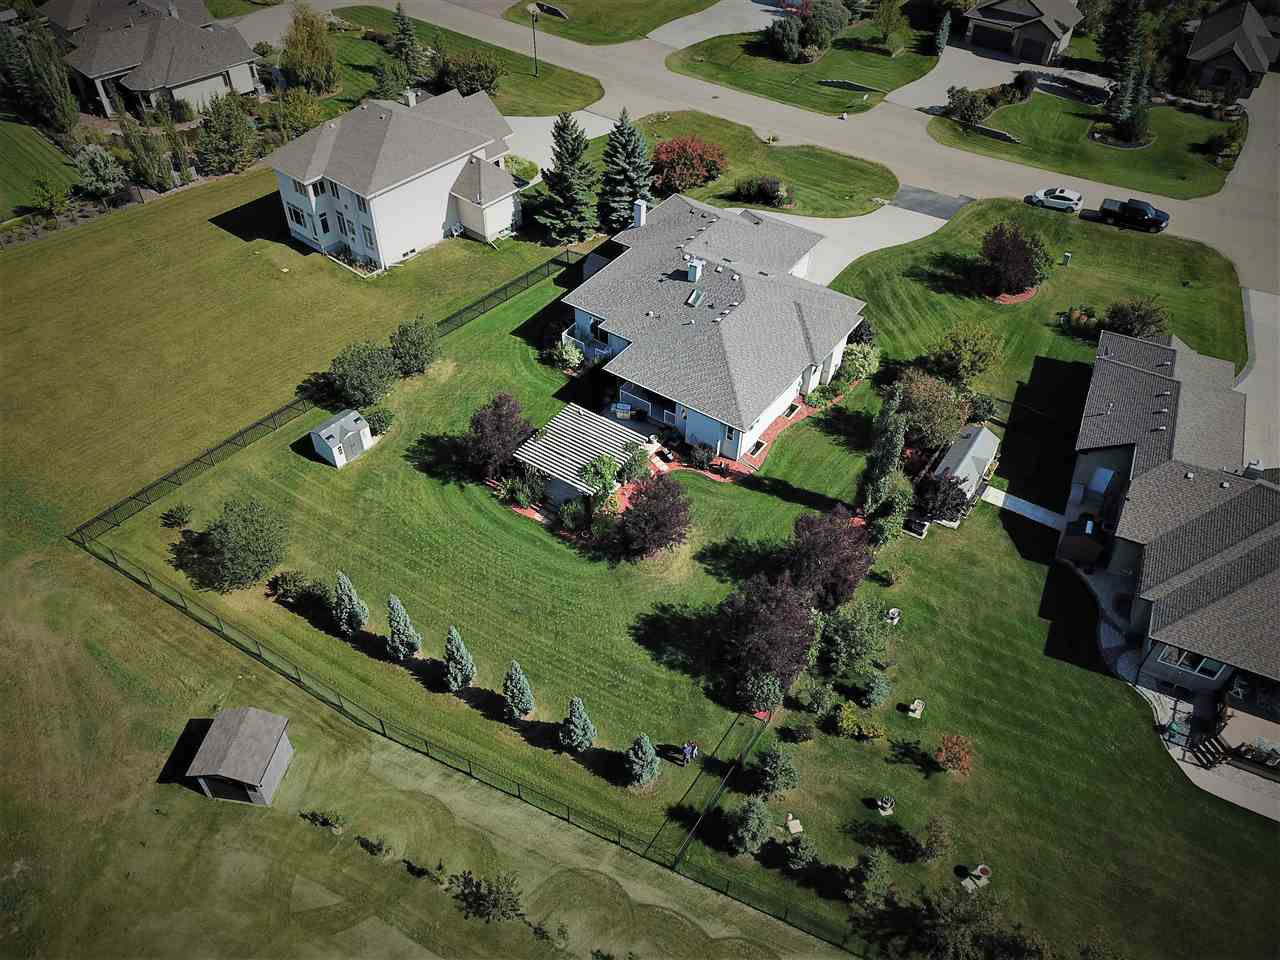 Main Photo: 10 26126 HWY 16: Rural Parkland County House for sale : MLS®# E4164144